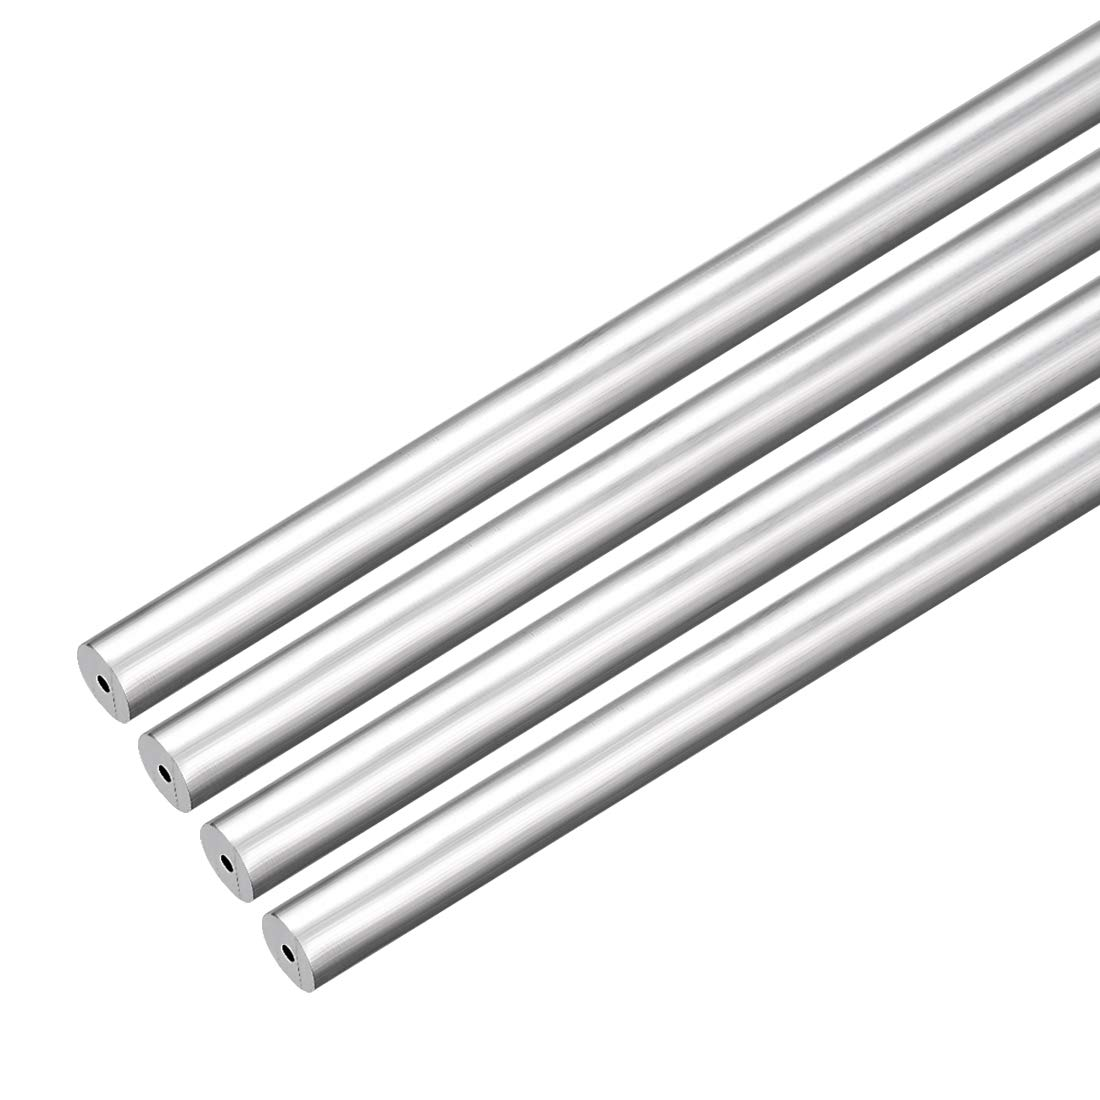 uxcell 4Pcs 6063 Seamless Aluminum Round Straight Tubing Tube 1 Feet Length 0.156 Inches ID 0.273 Inches OD